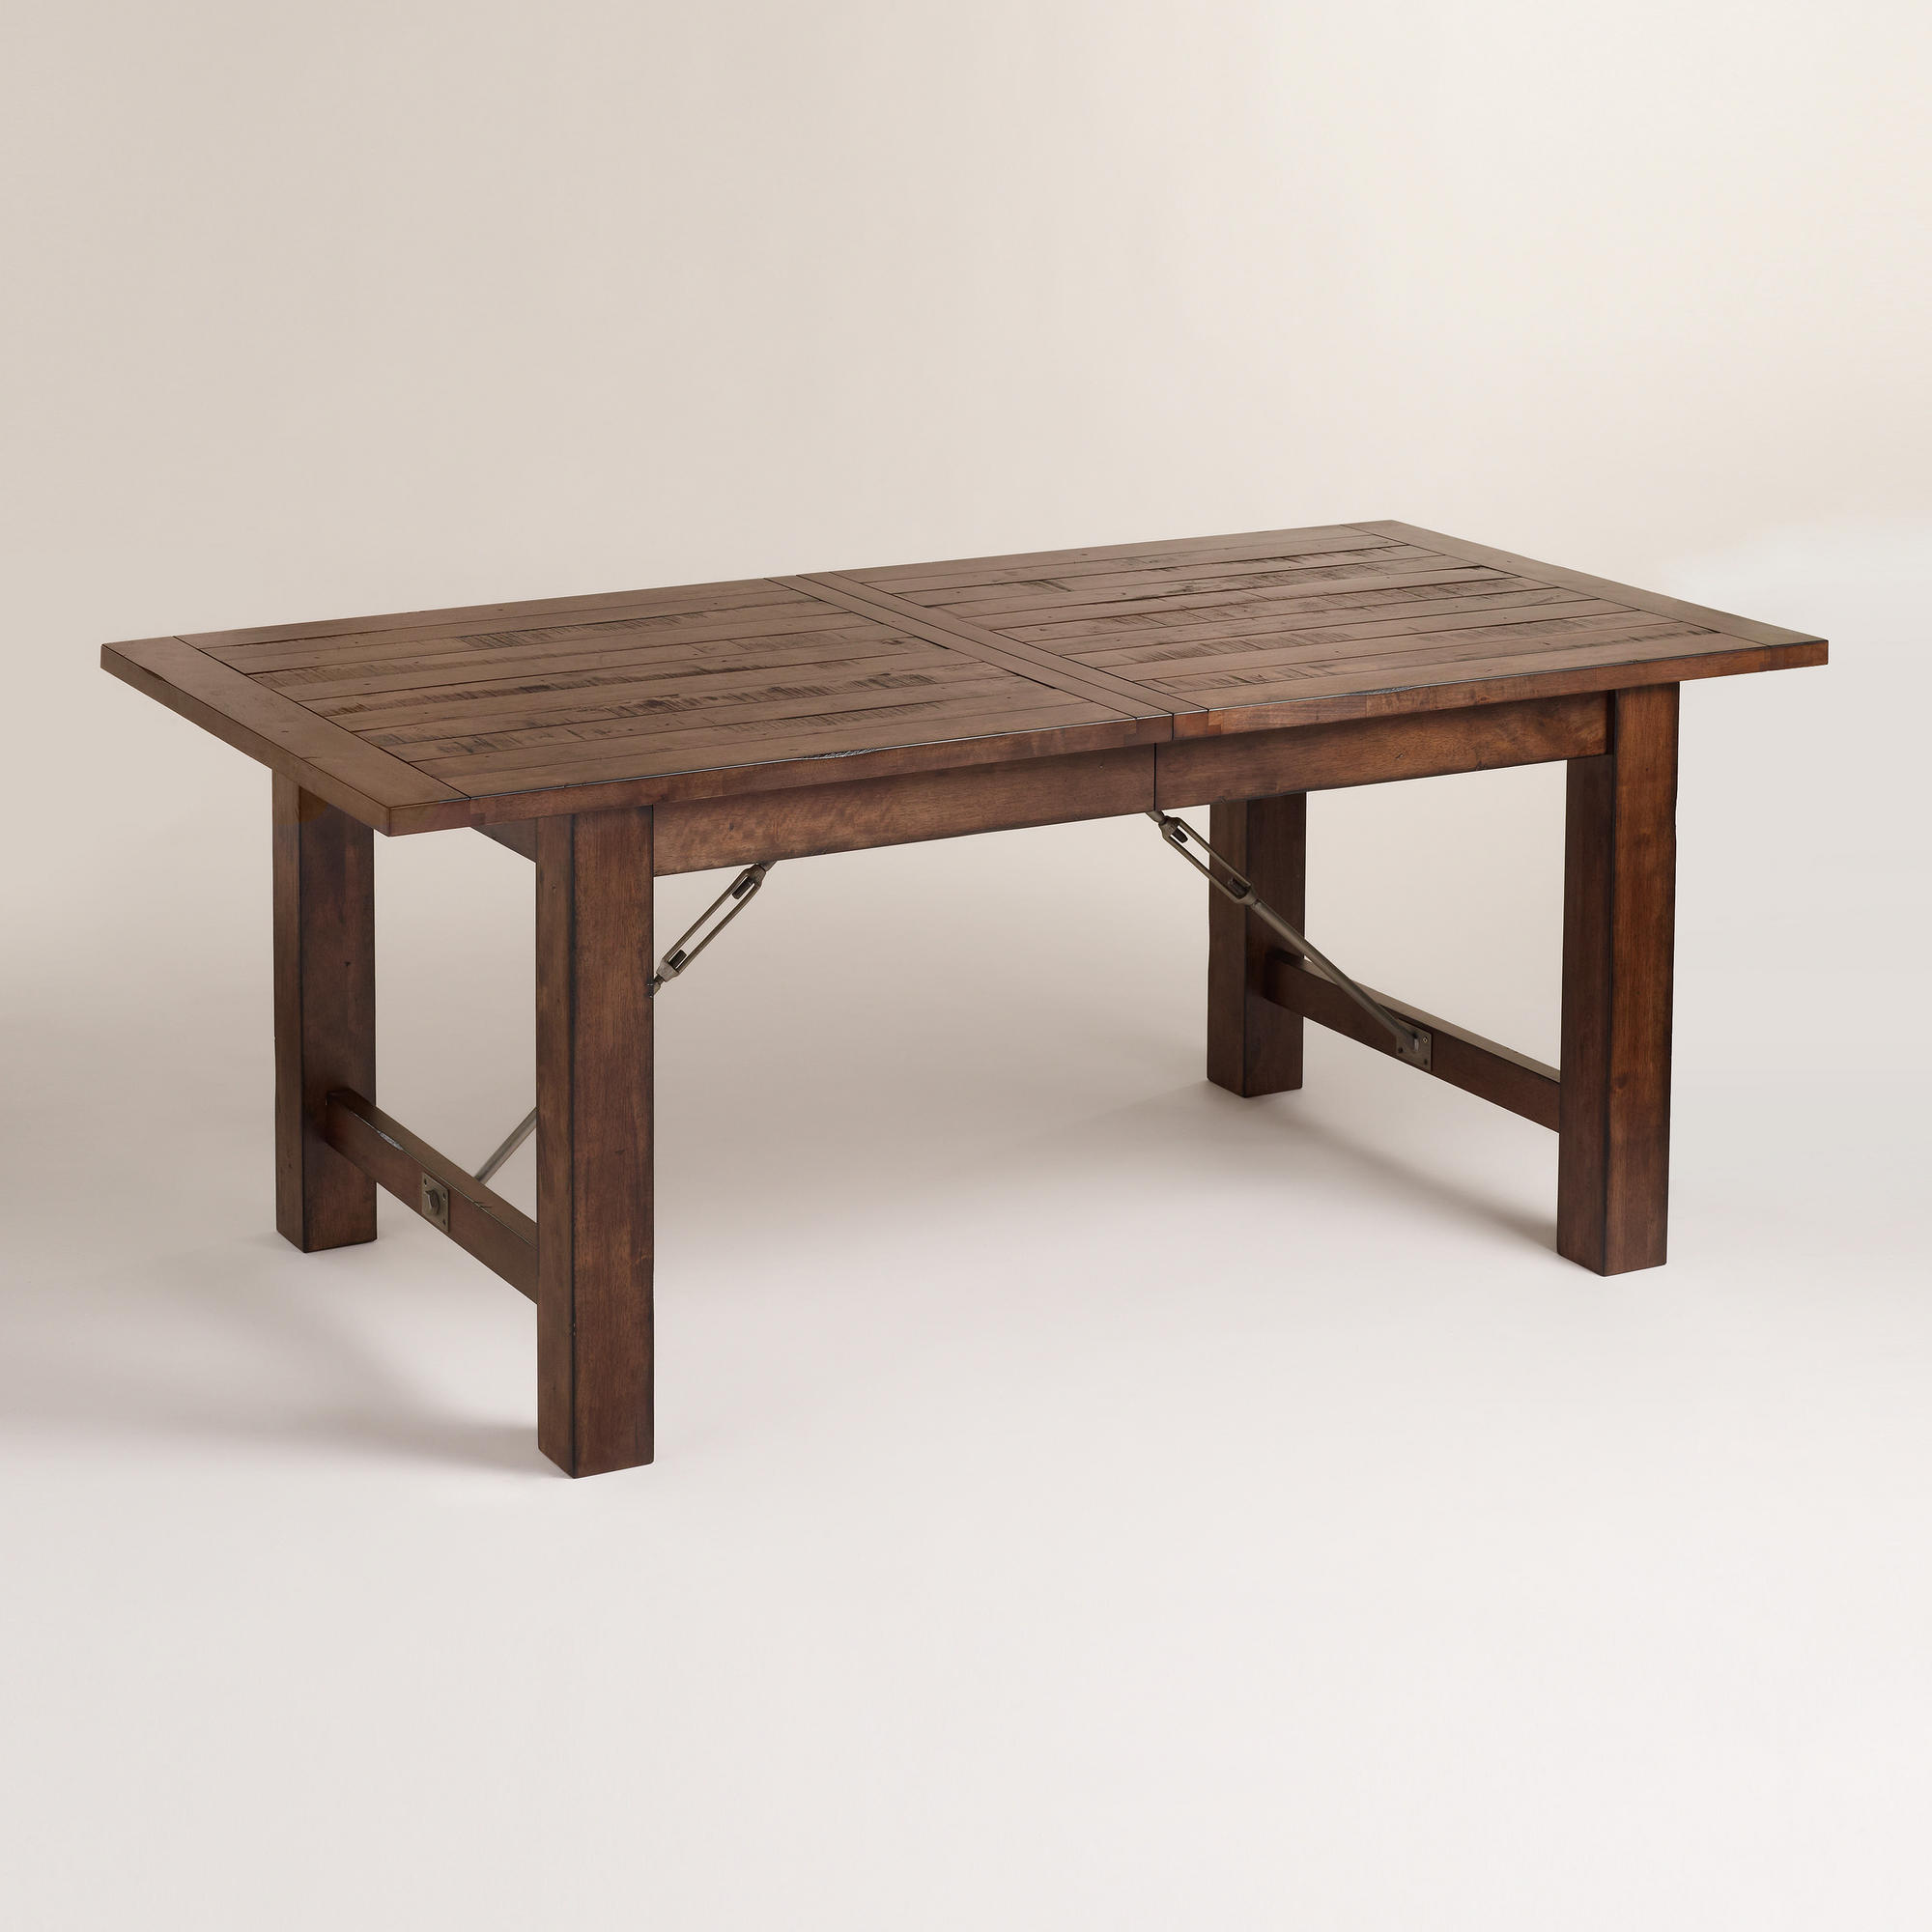 ... : http://www.worldmarket.com/product/garner-ext-table.do?&from=fn